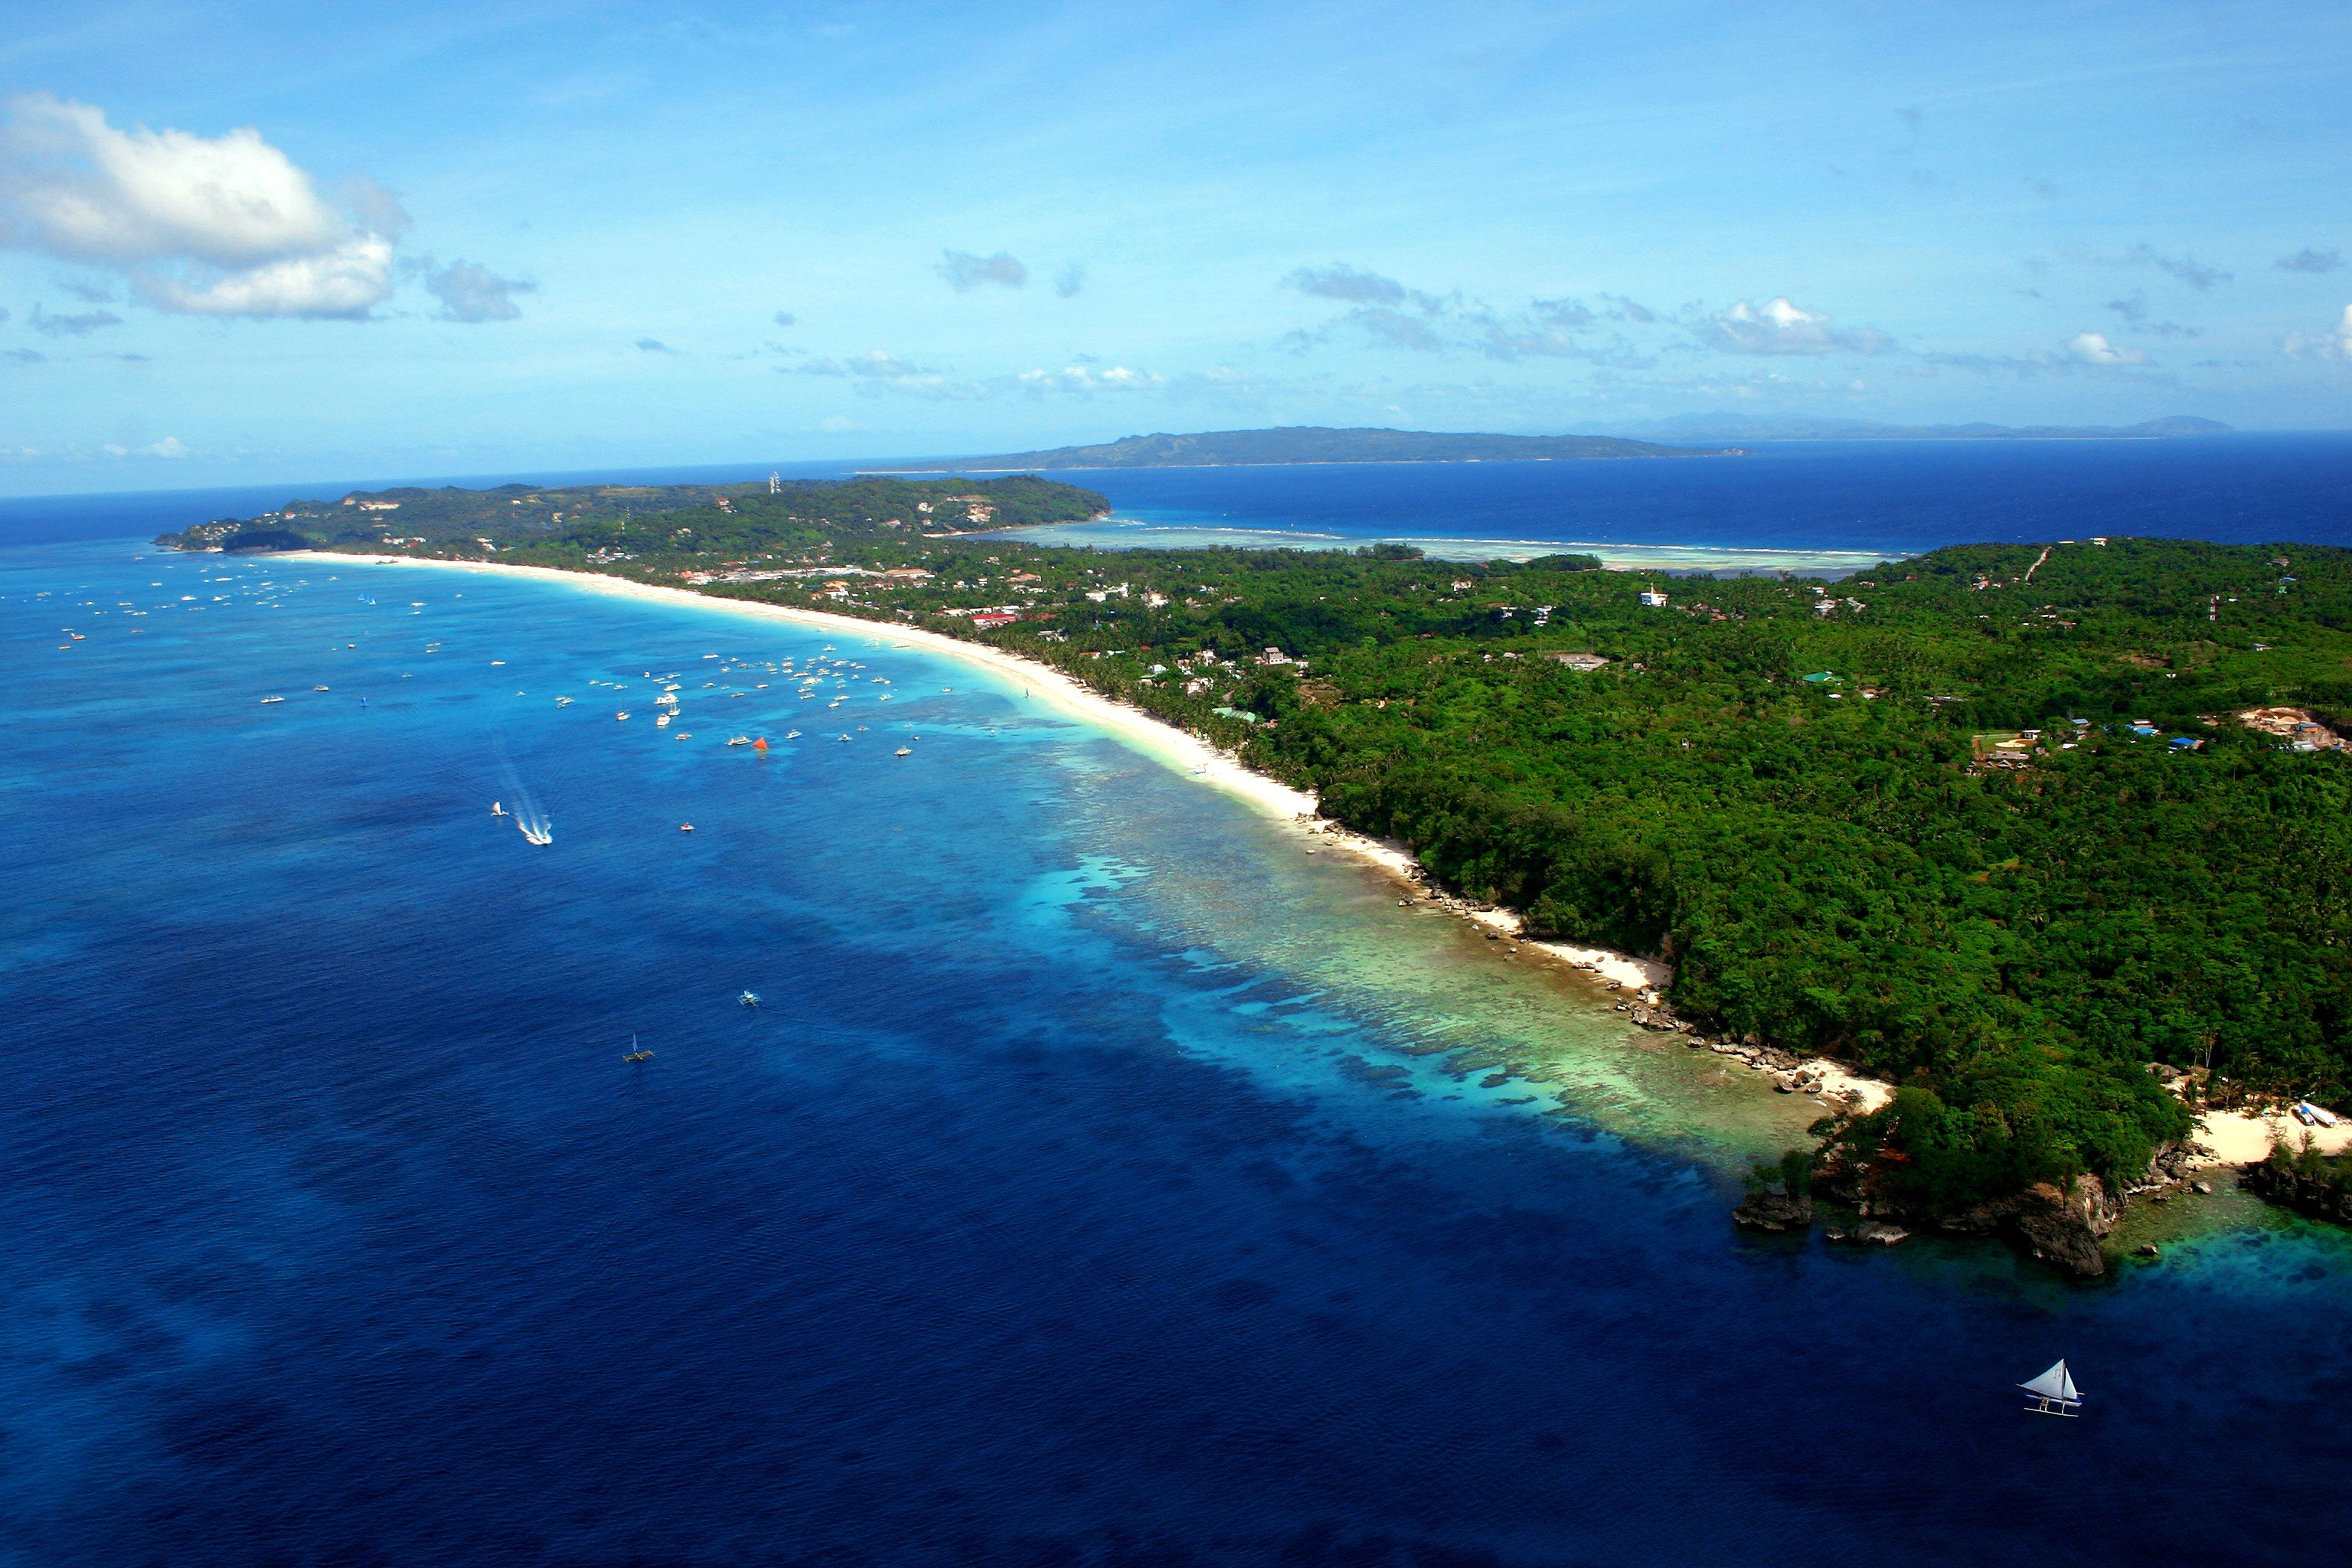 boracay is a small tropical island paradise located in the western